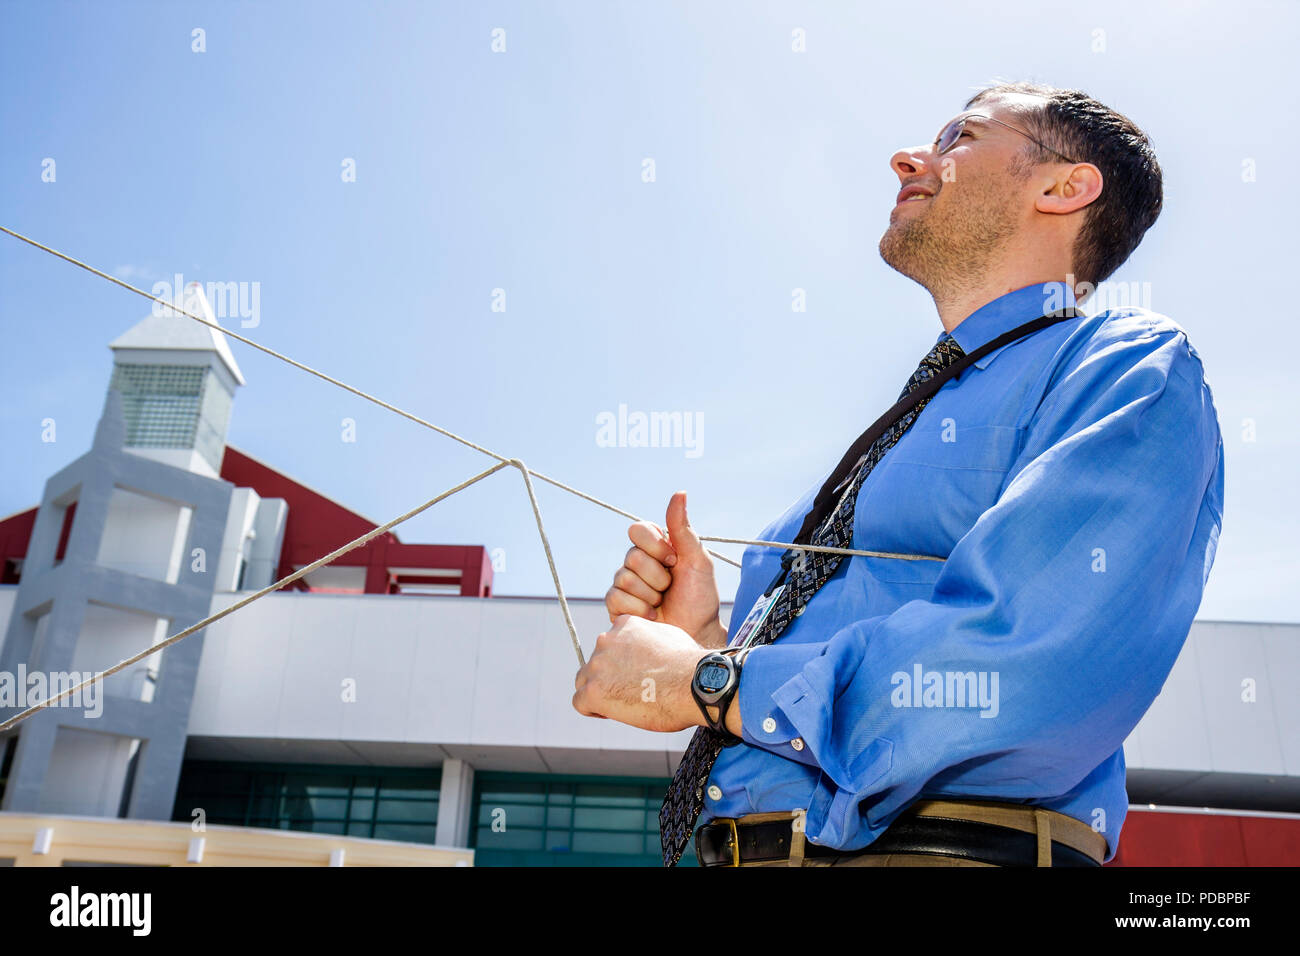 Miami Beach Florida Convention Center controls helium filled balloon man rope guide - Stock Image